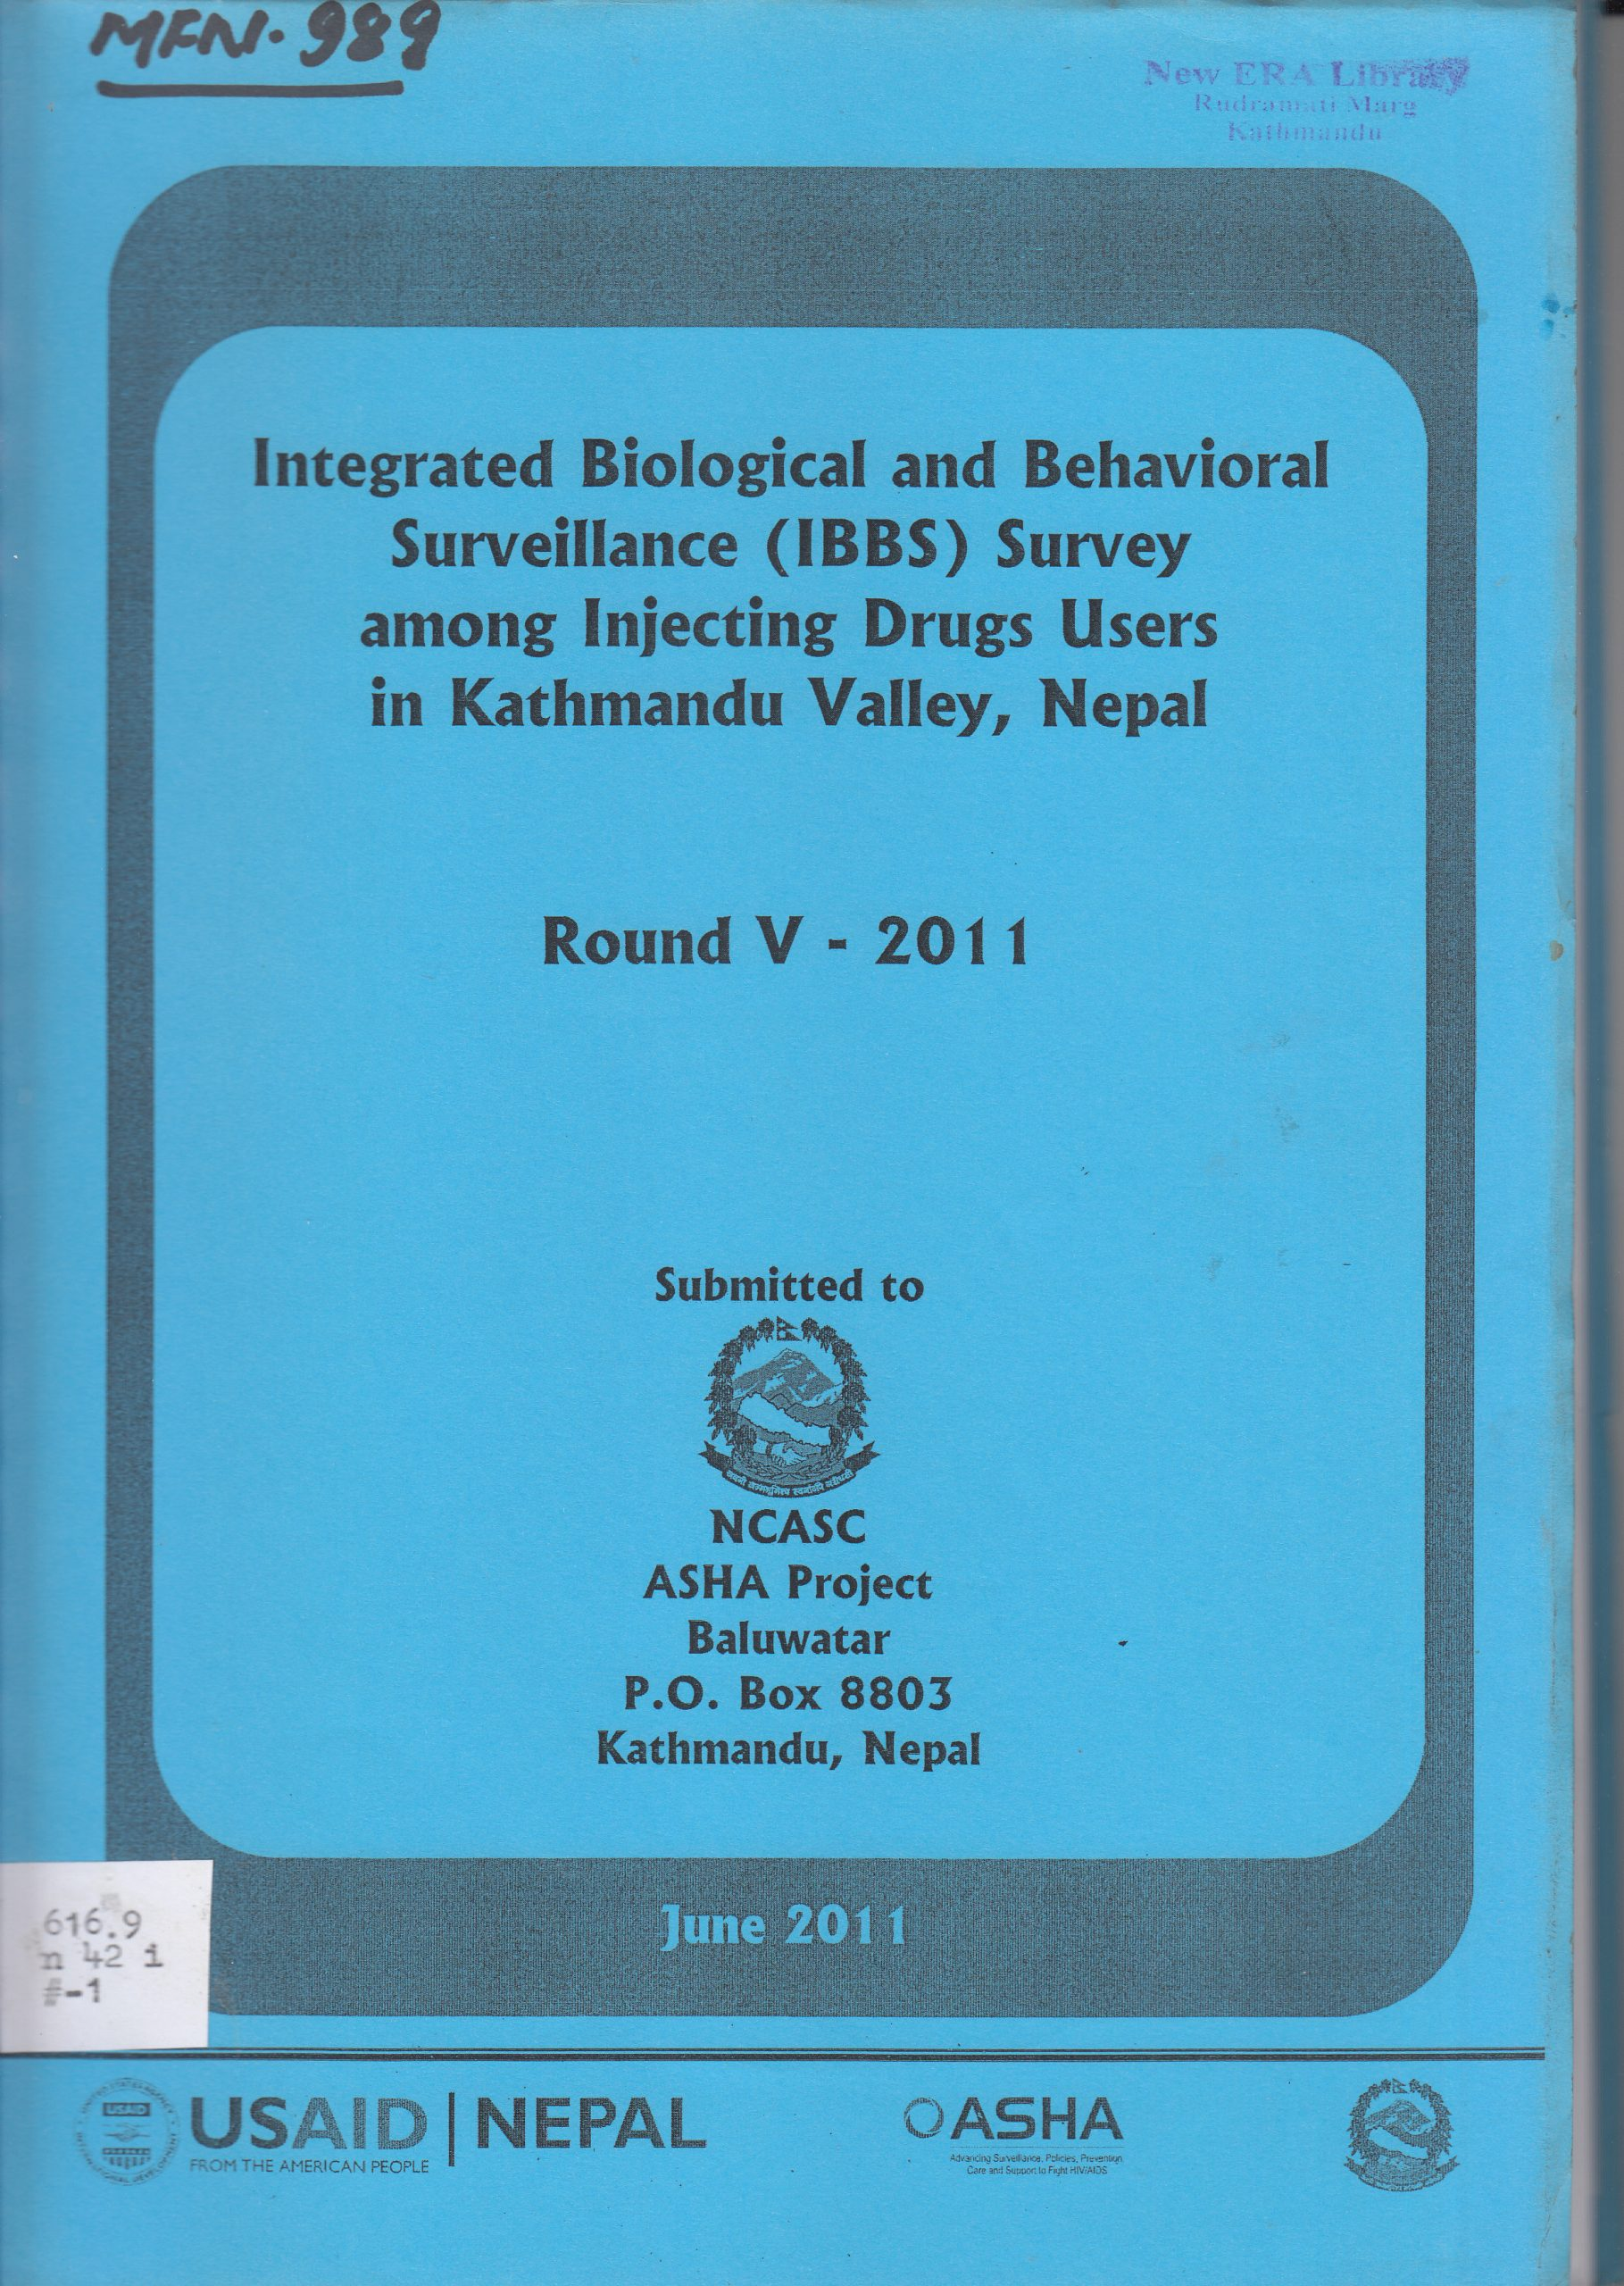 Integrated Biological and Behavioral Surveillance Survey (IBBS) among Injecting Drug Users in Kathmandu Valley, Nepal: Round V – 2011